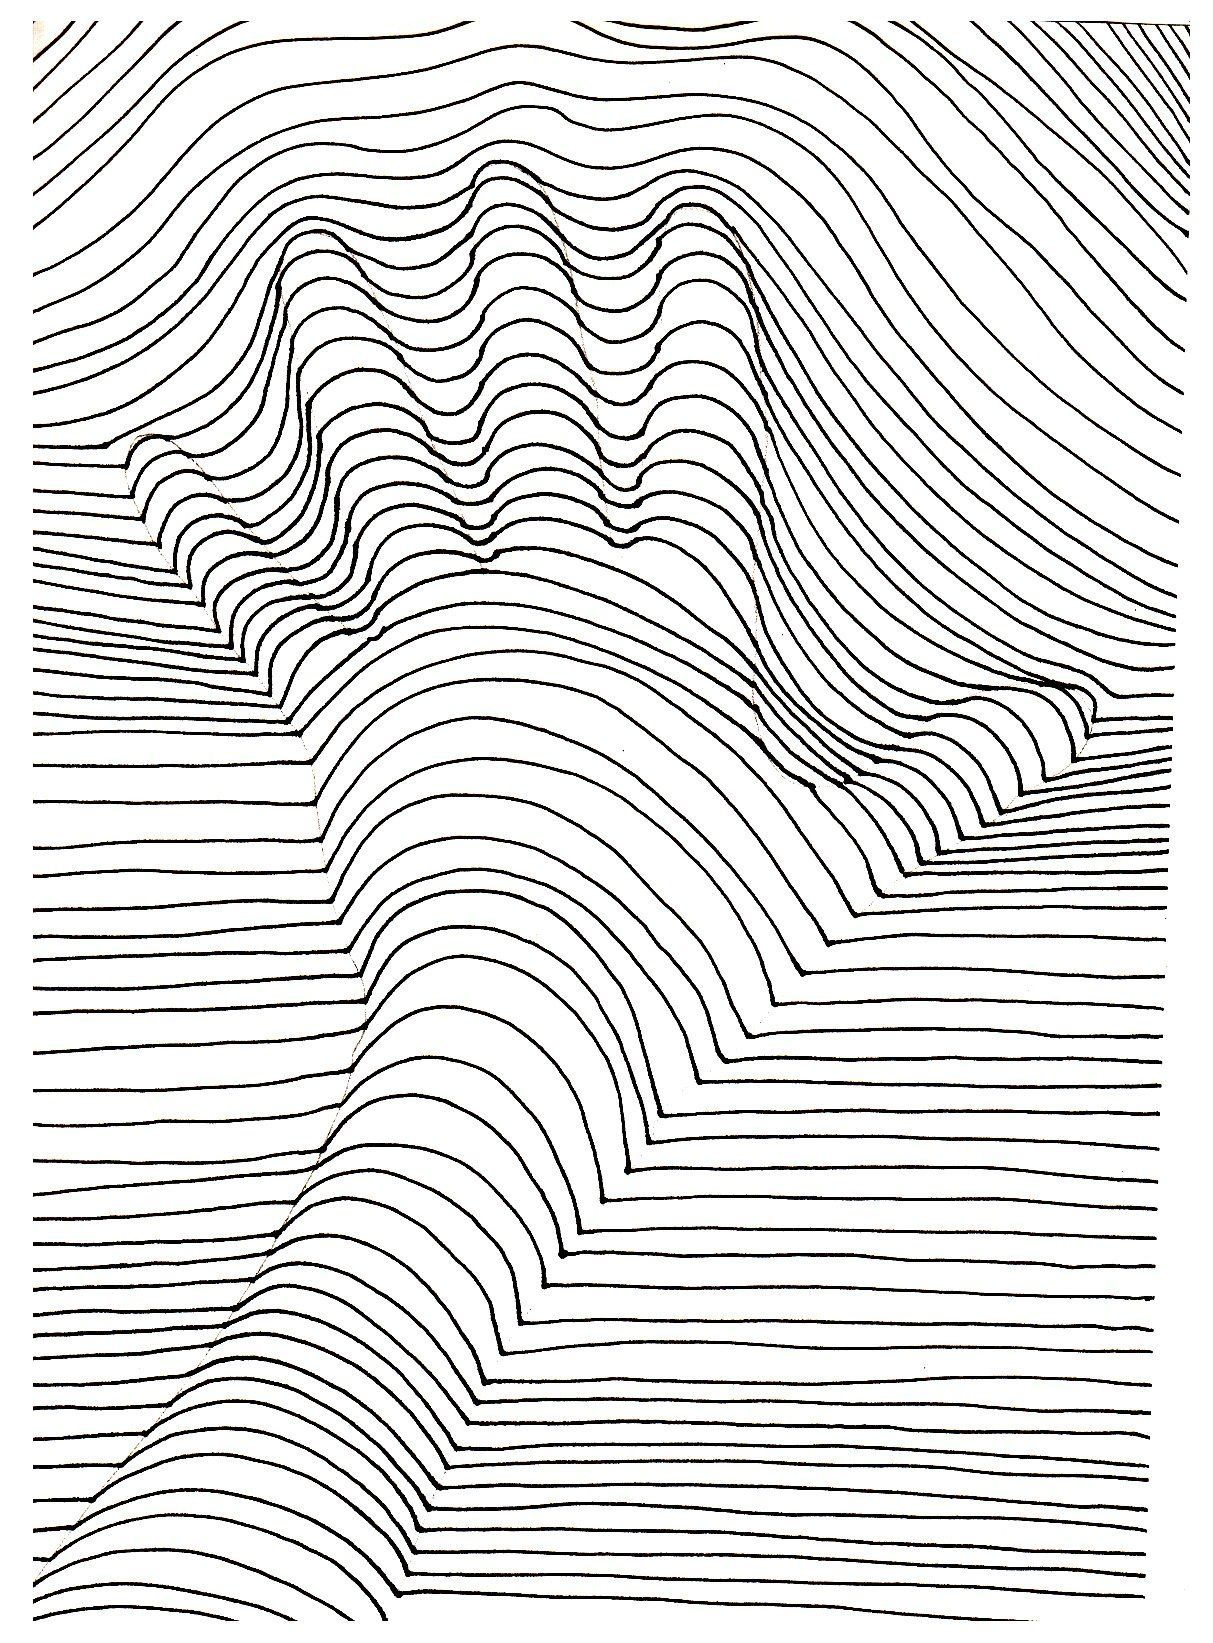 50 Printable Adult Coloring Pages That Will Make You Feel Like a Kid Again #Lines